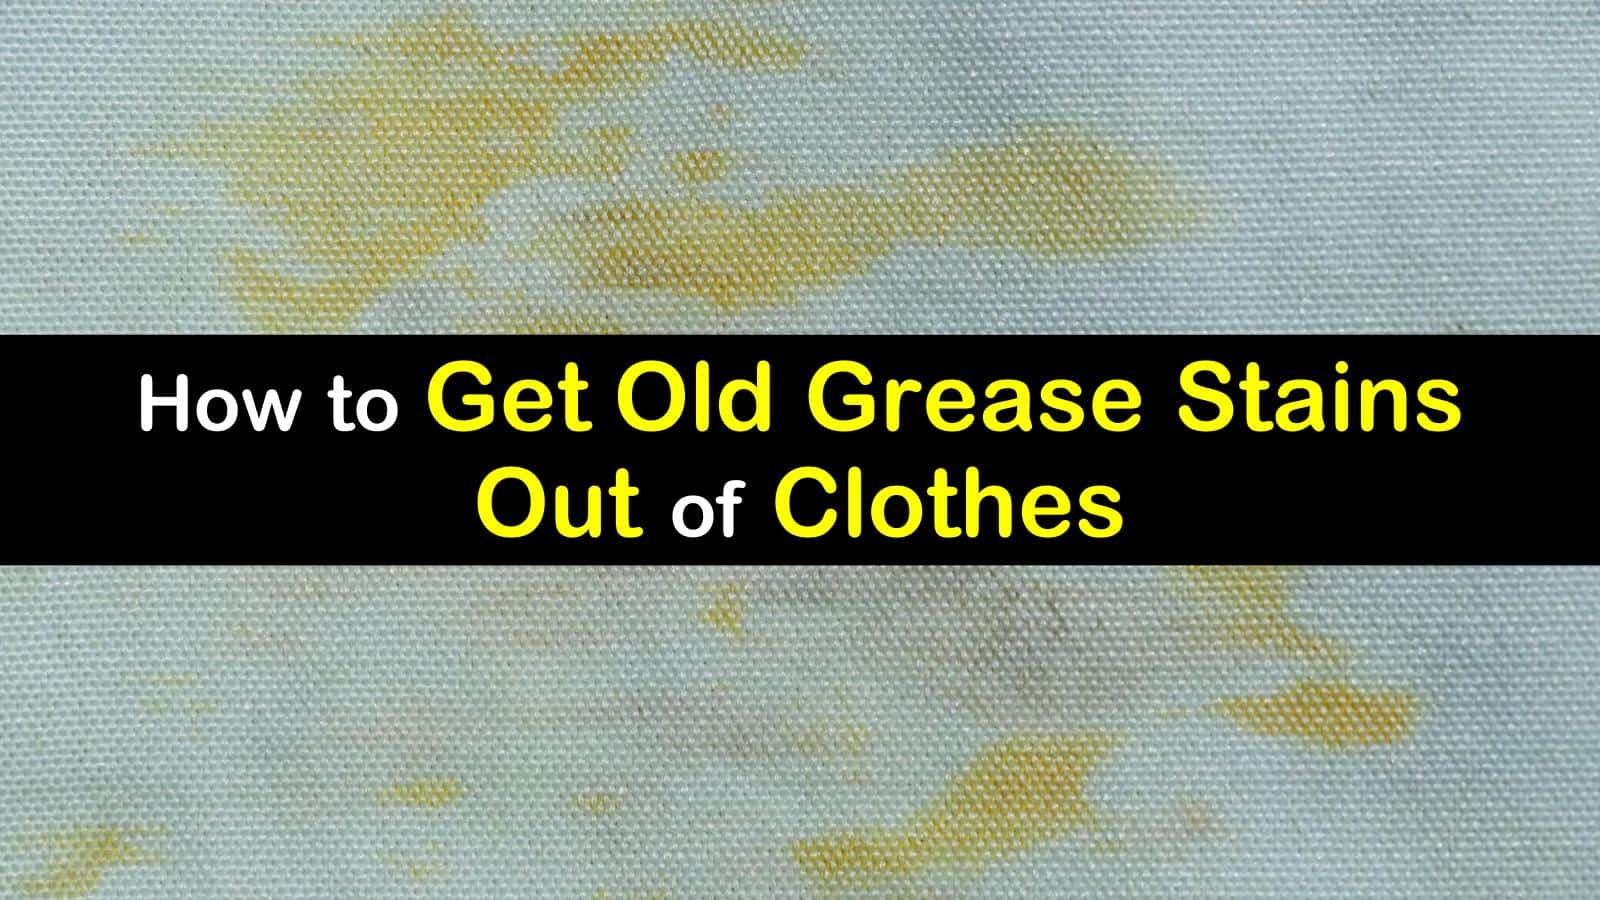 how to get old grease stains out of clothes titleimg1